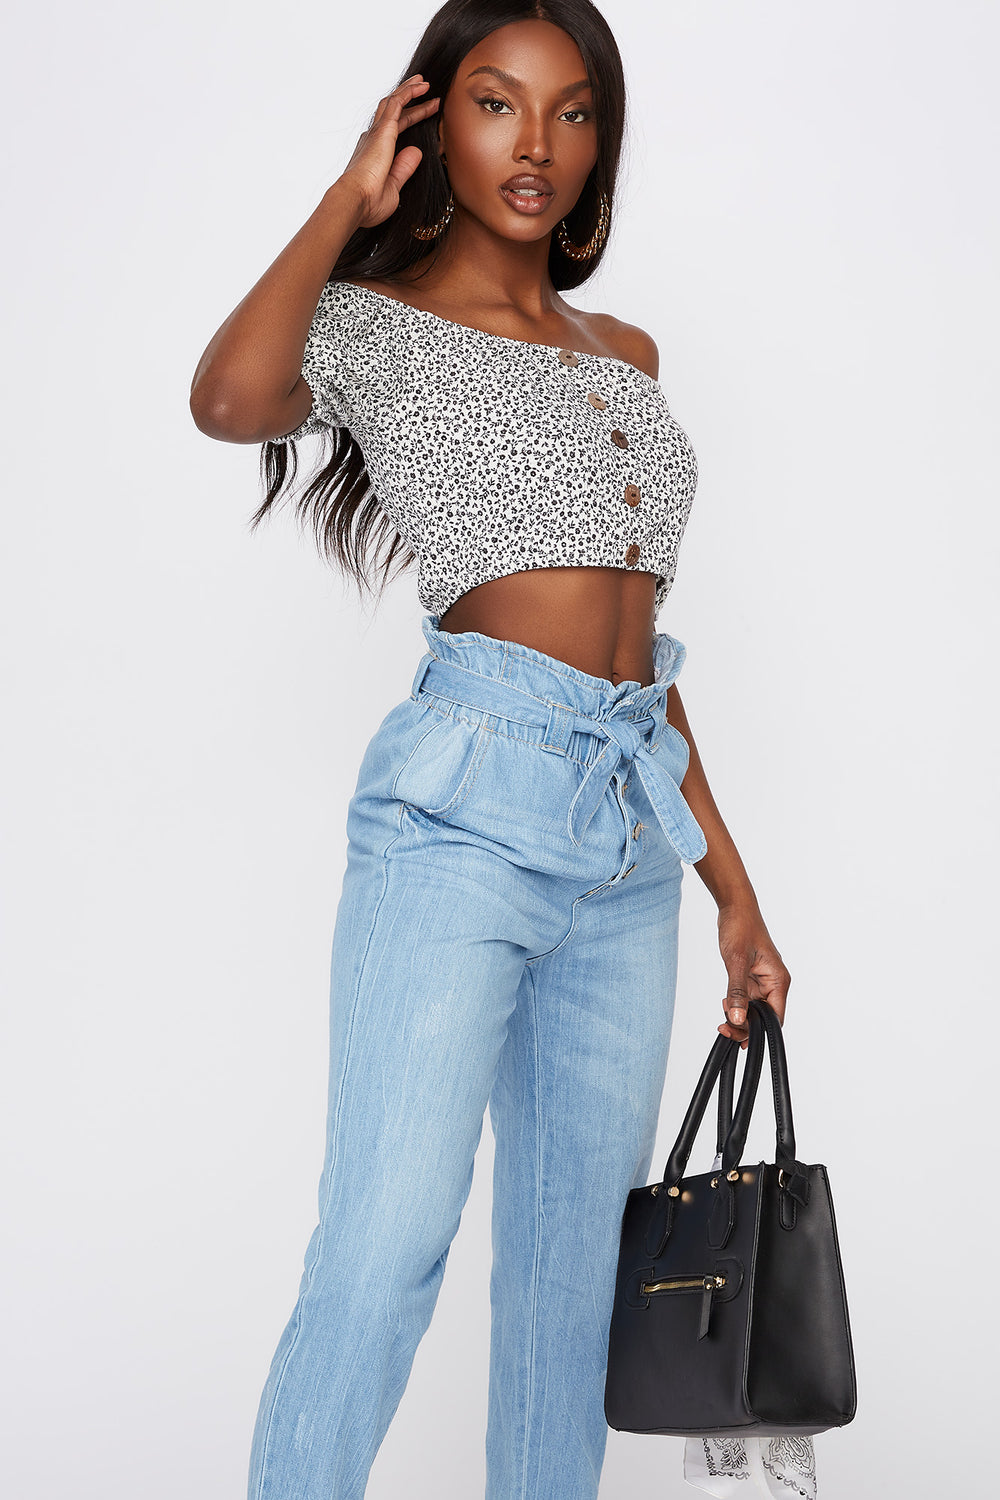 Cropped Floral Button Front Off The Shoulder Top Black with White